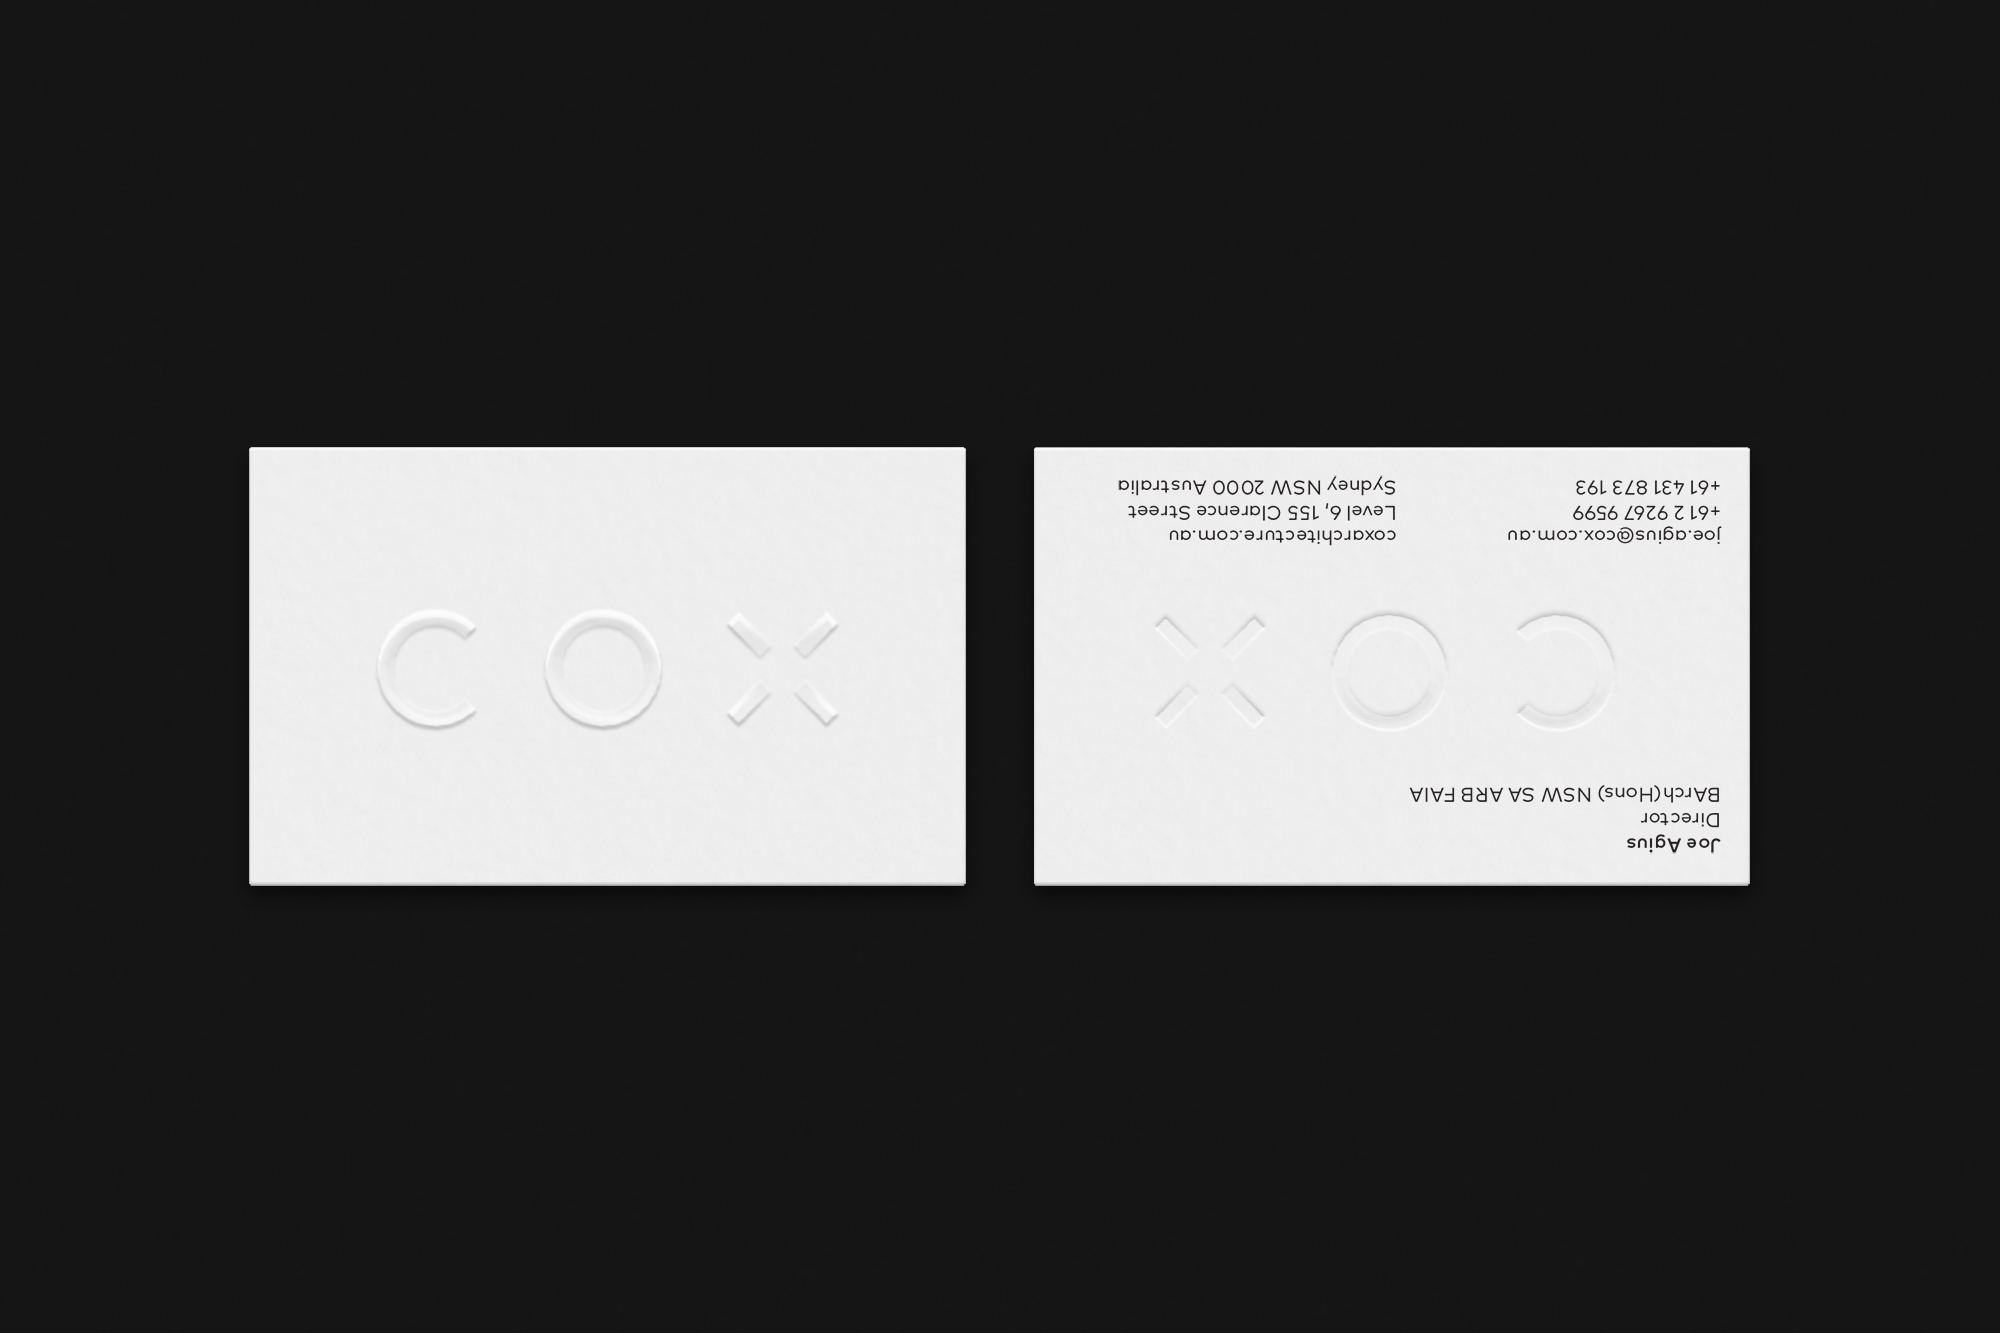 NITA_CaseStudy_COX_Business_Card_01